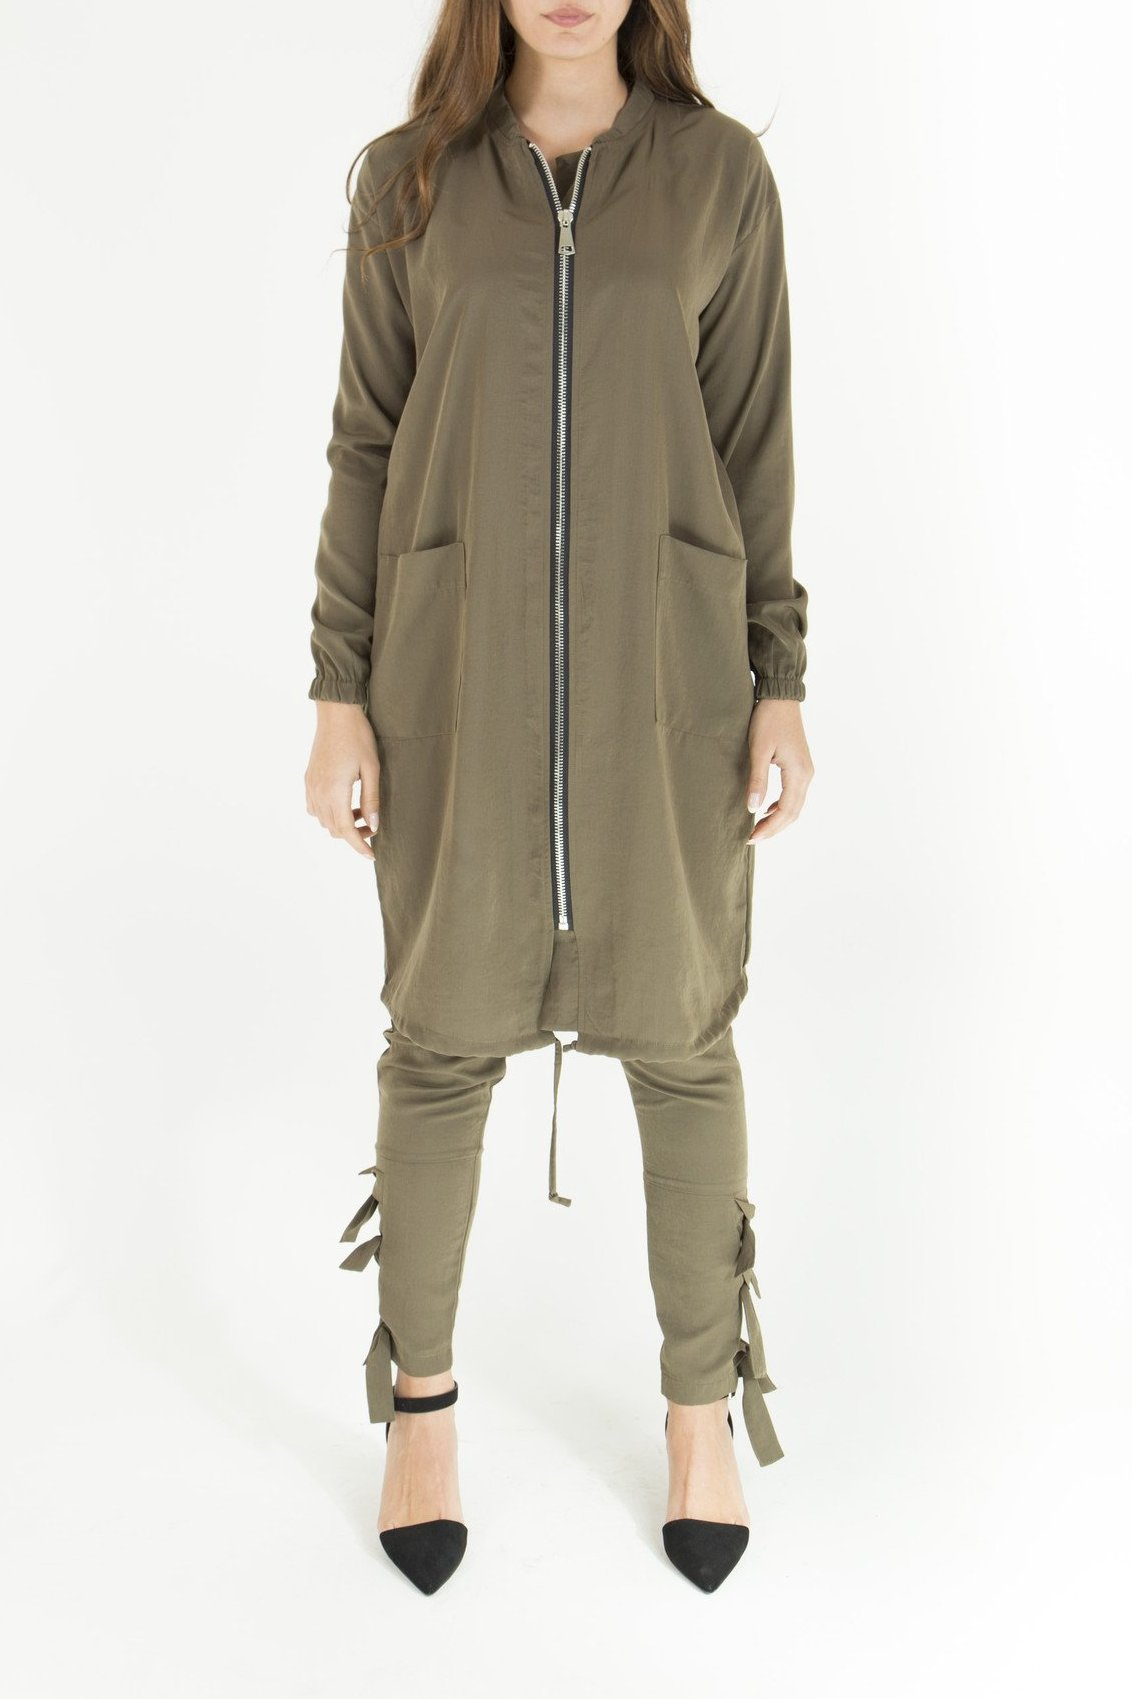 Lightweight Military Bomber Jacket